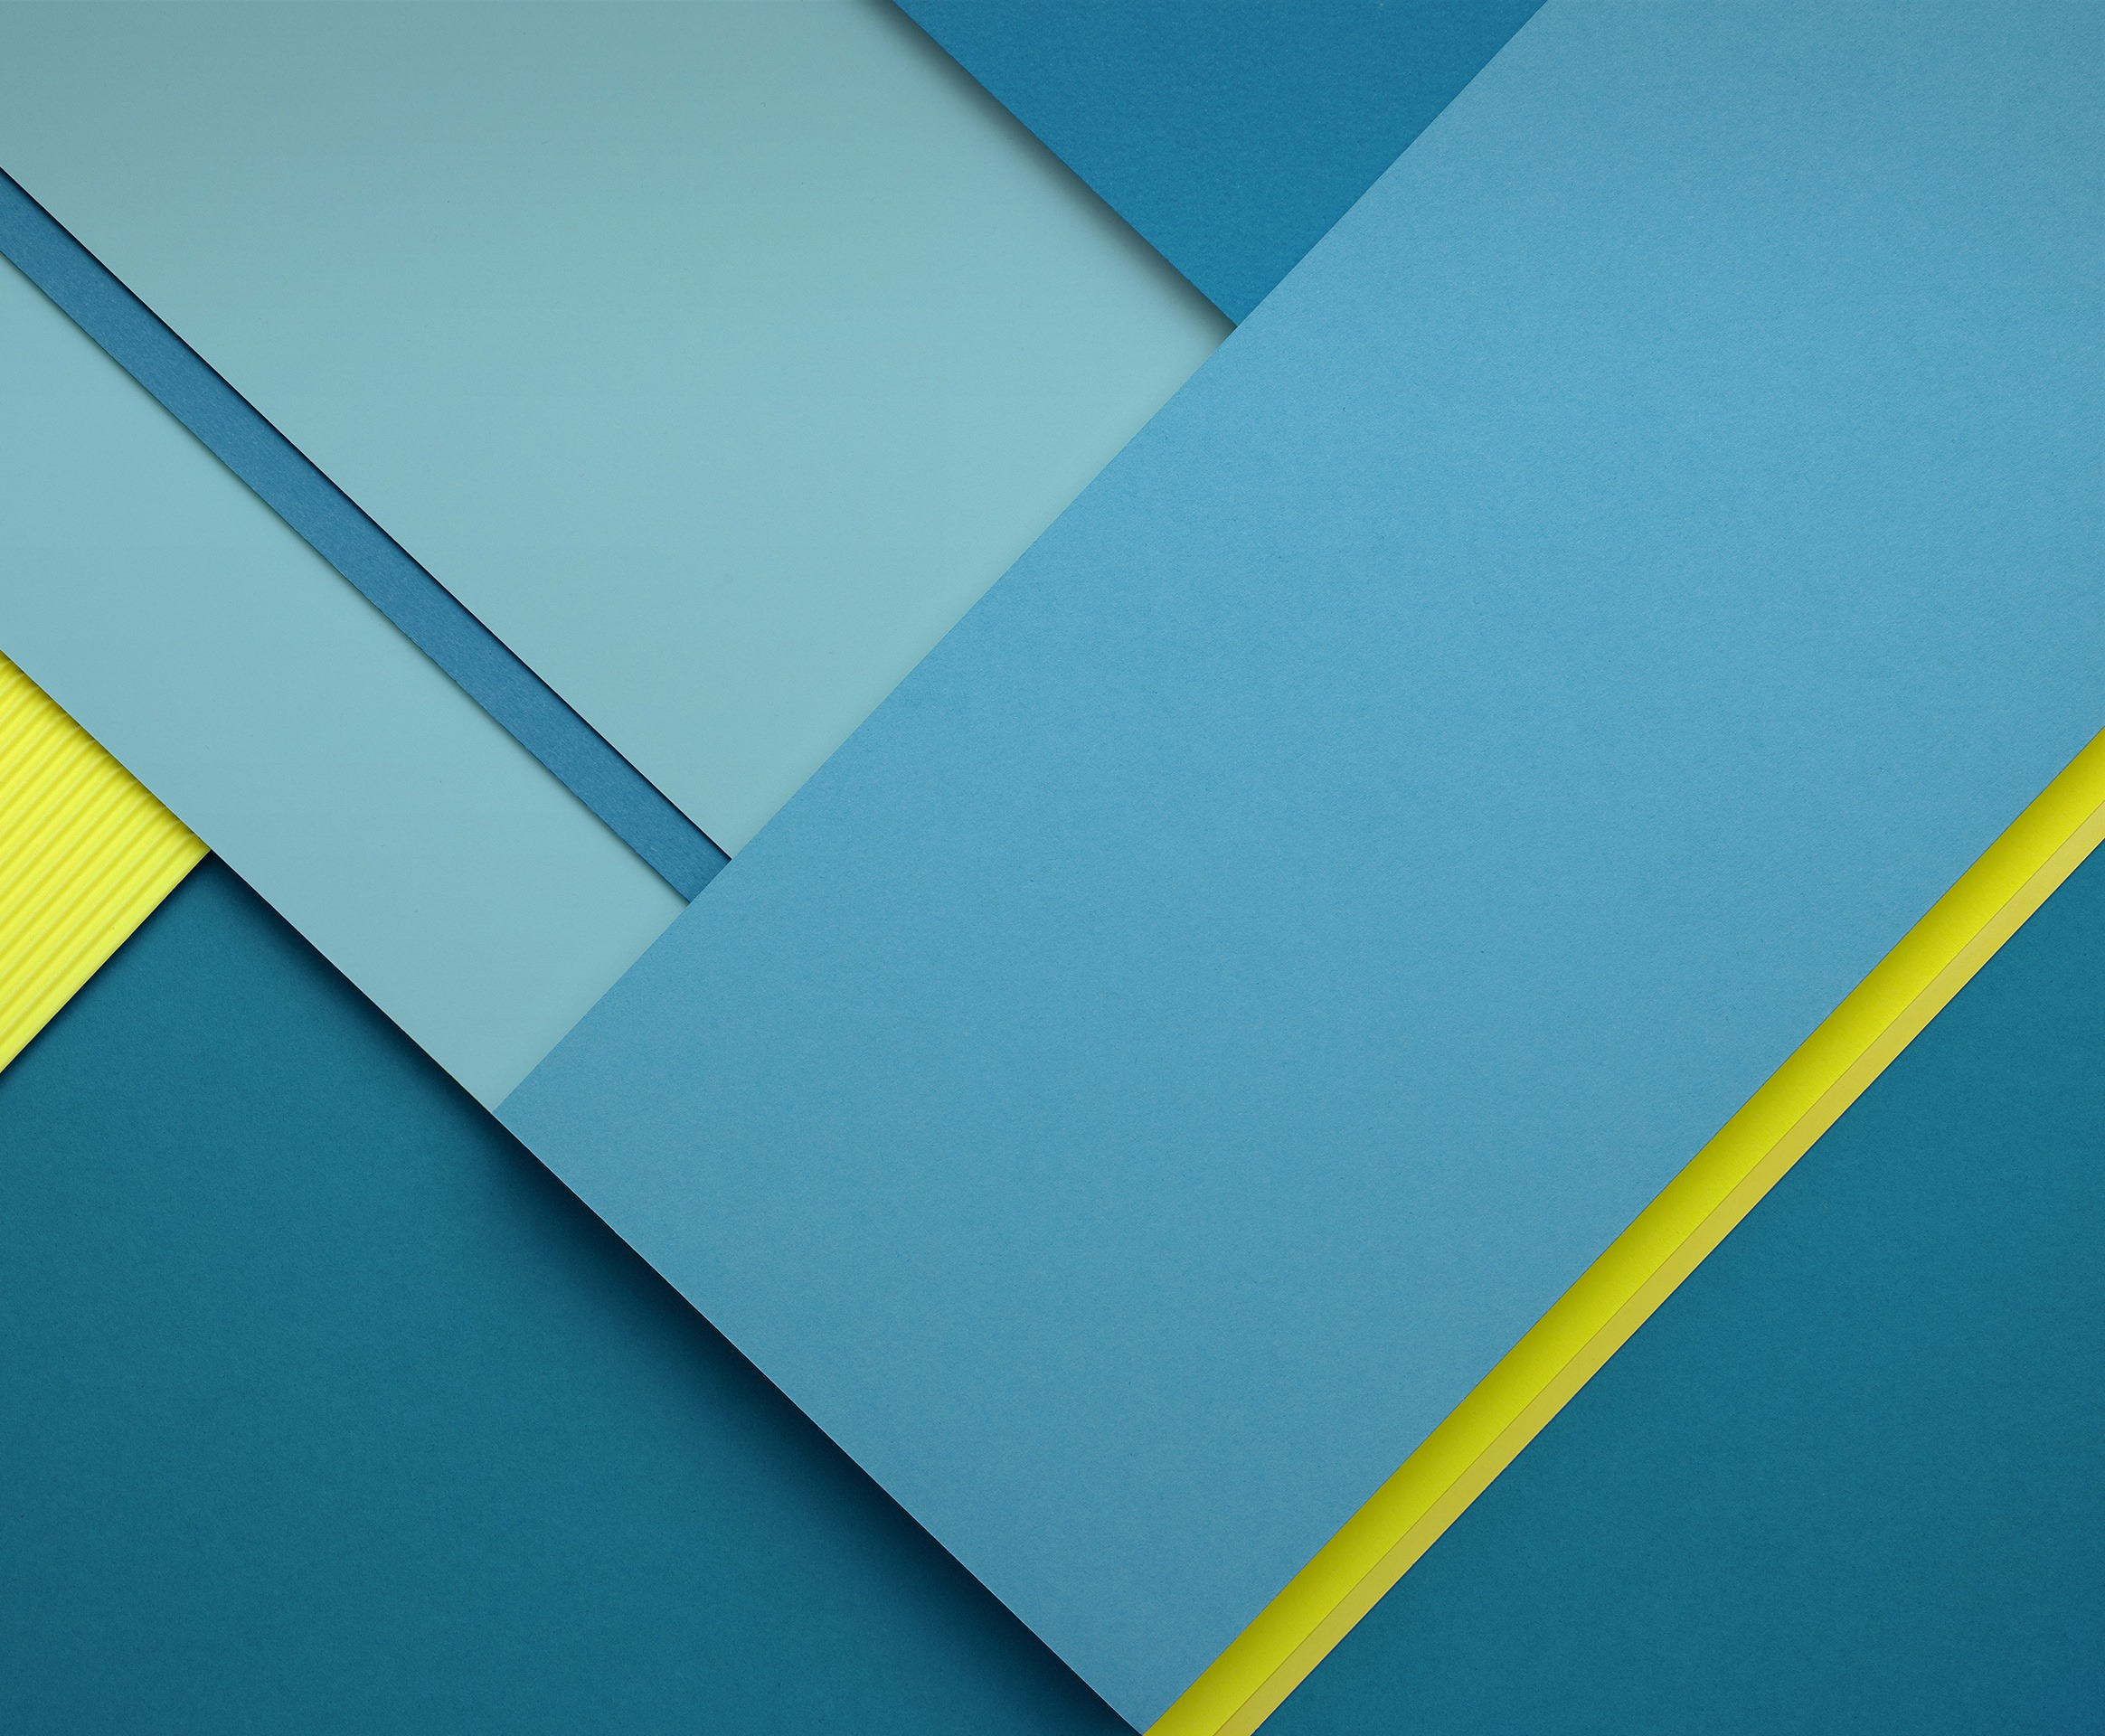 Download 11 Wallpapers From Android 50 Lollipop 2328x1920